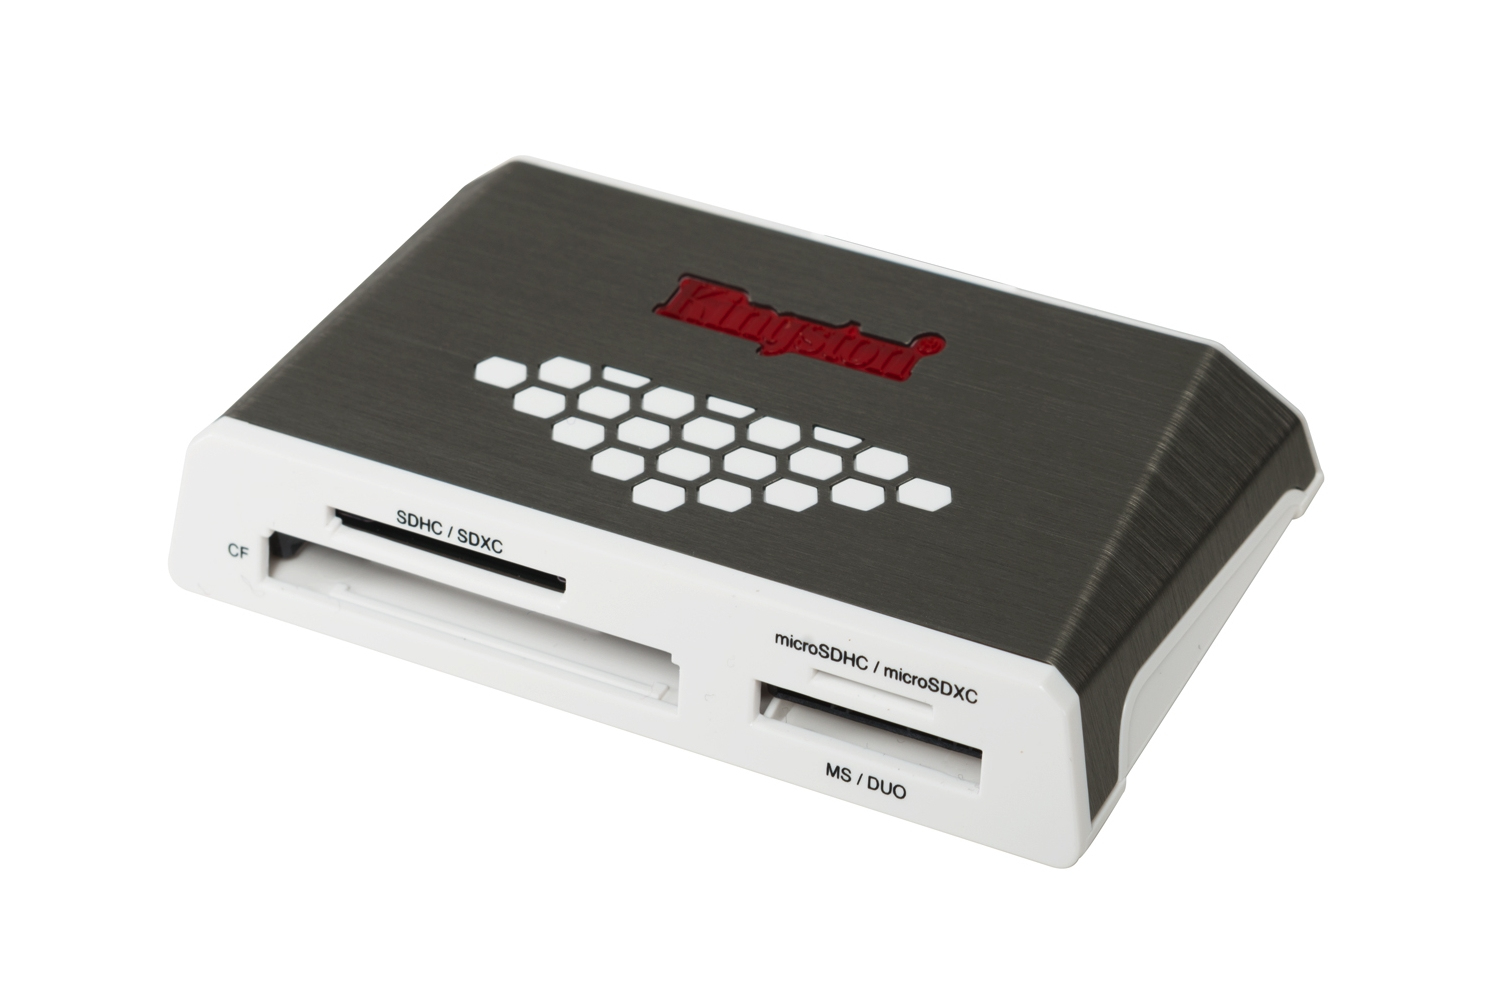 KINGSTON TECHNOLOGY USB 3.0 HIGH-SPEED MEDIA READER GREY,WHITE CARD